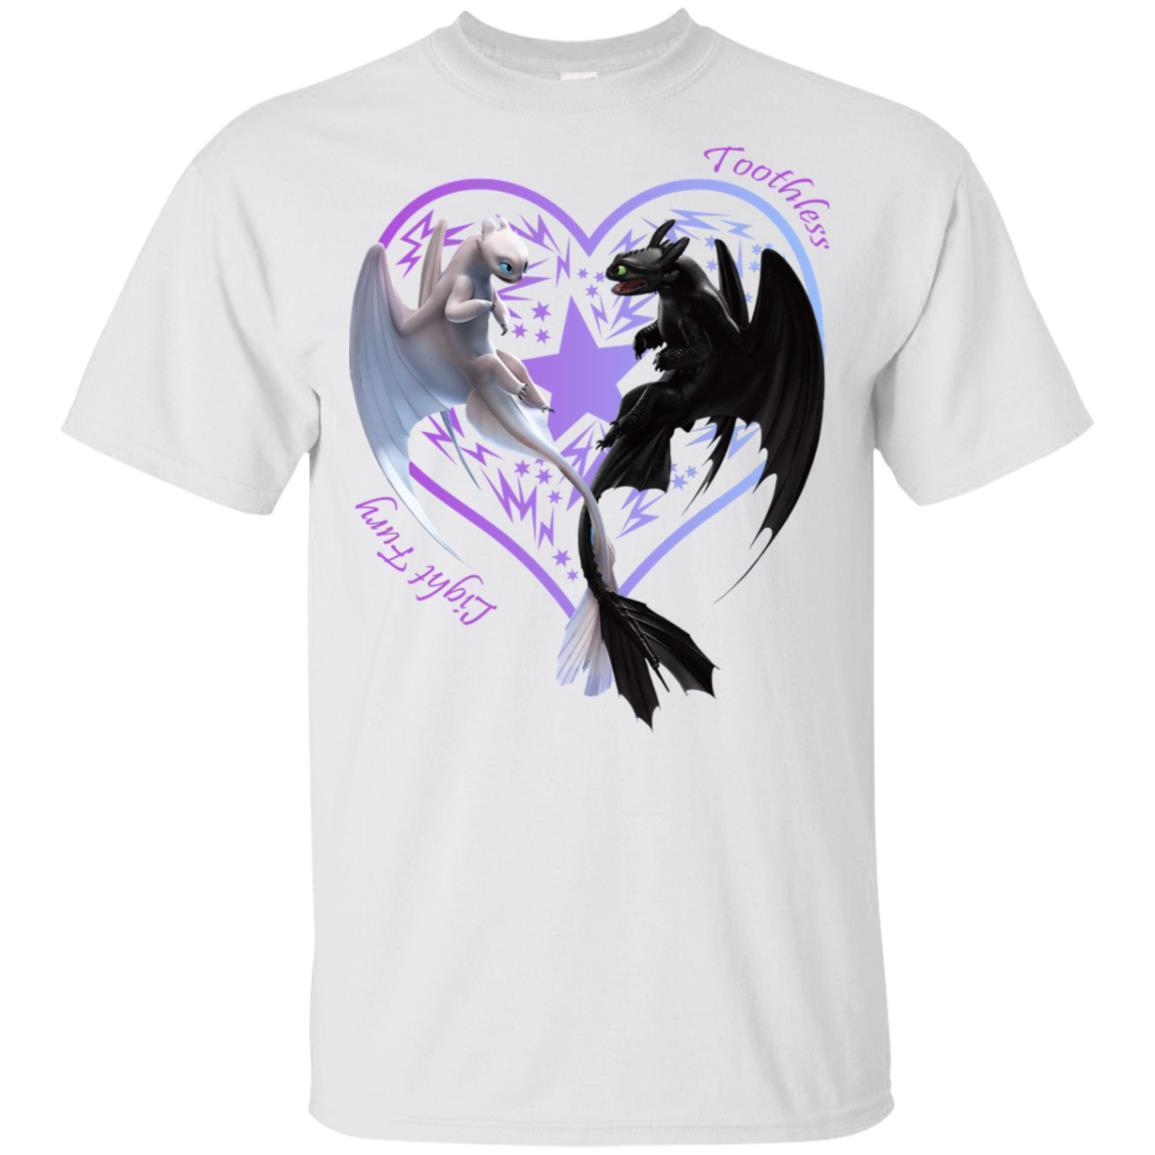 How To Train Dragon Toothless & Light Fury In Love Youth T-shirt